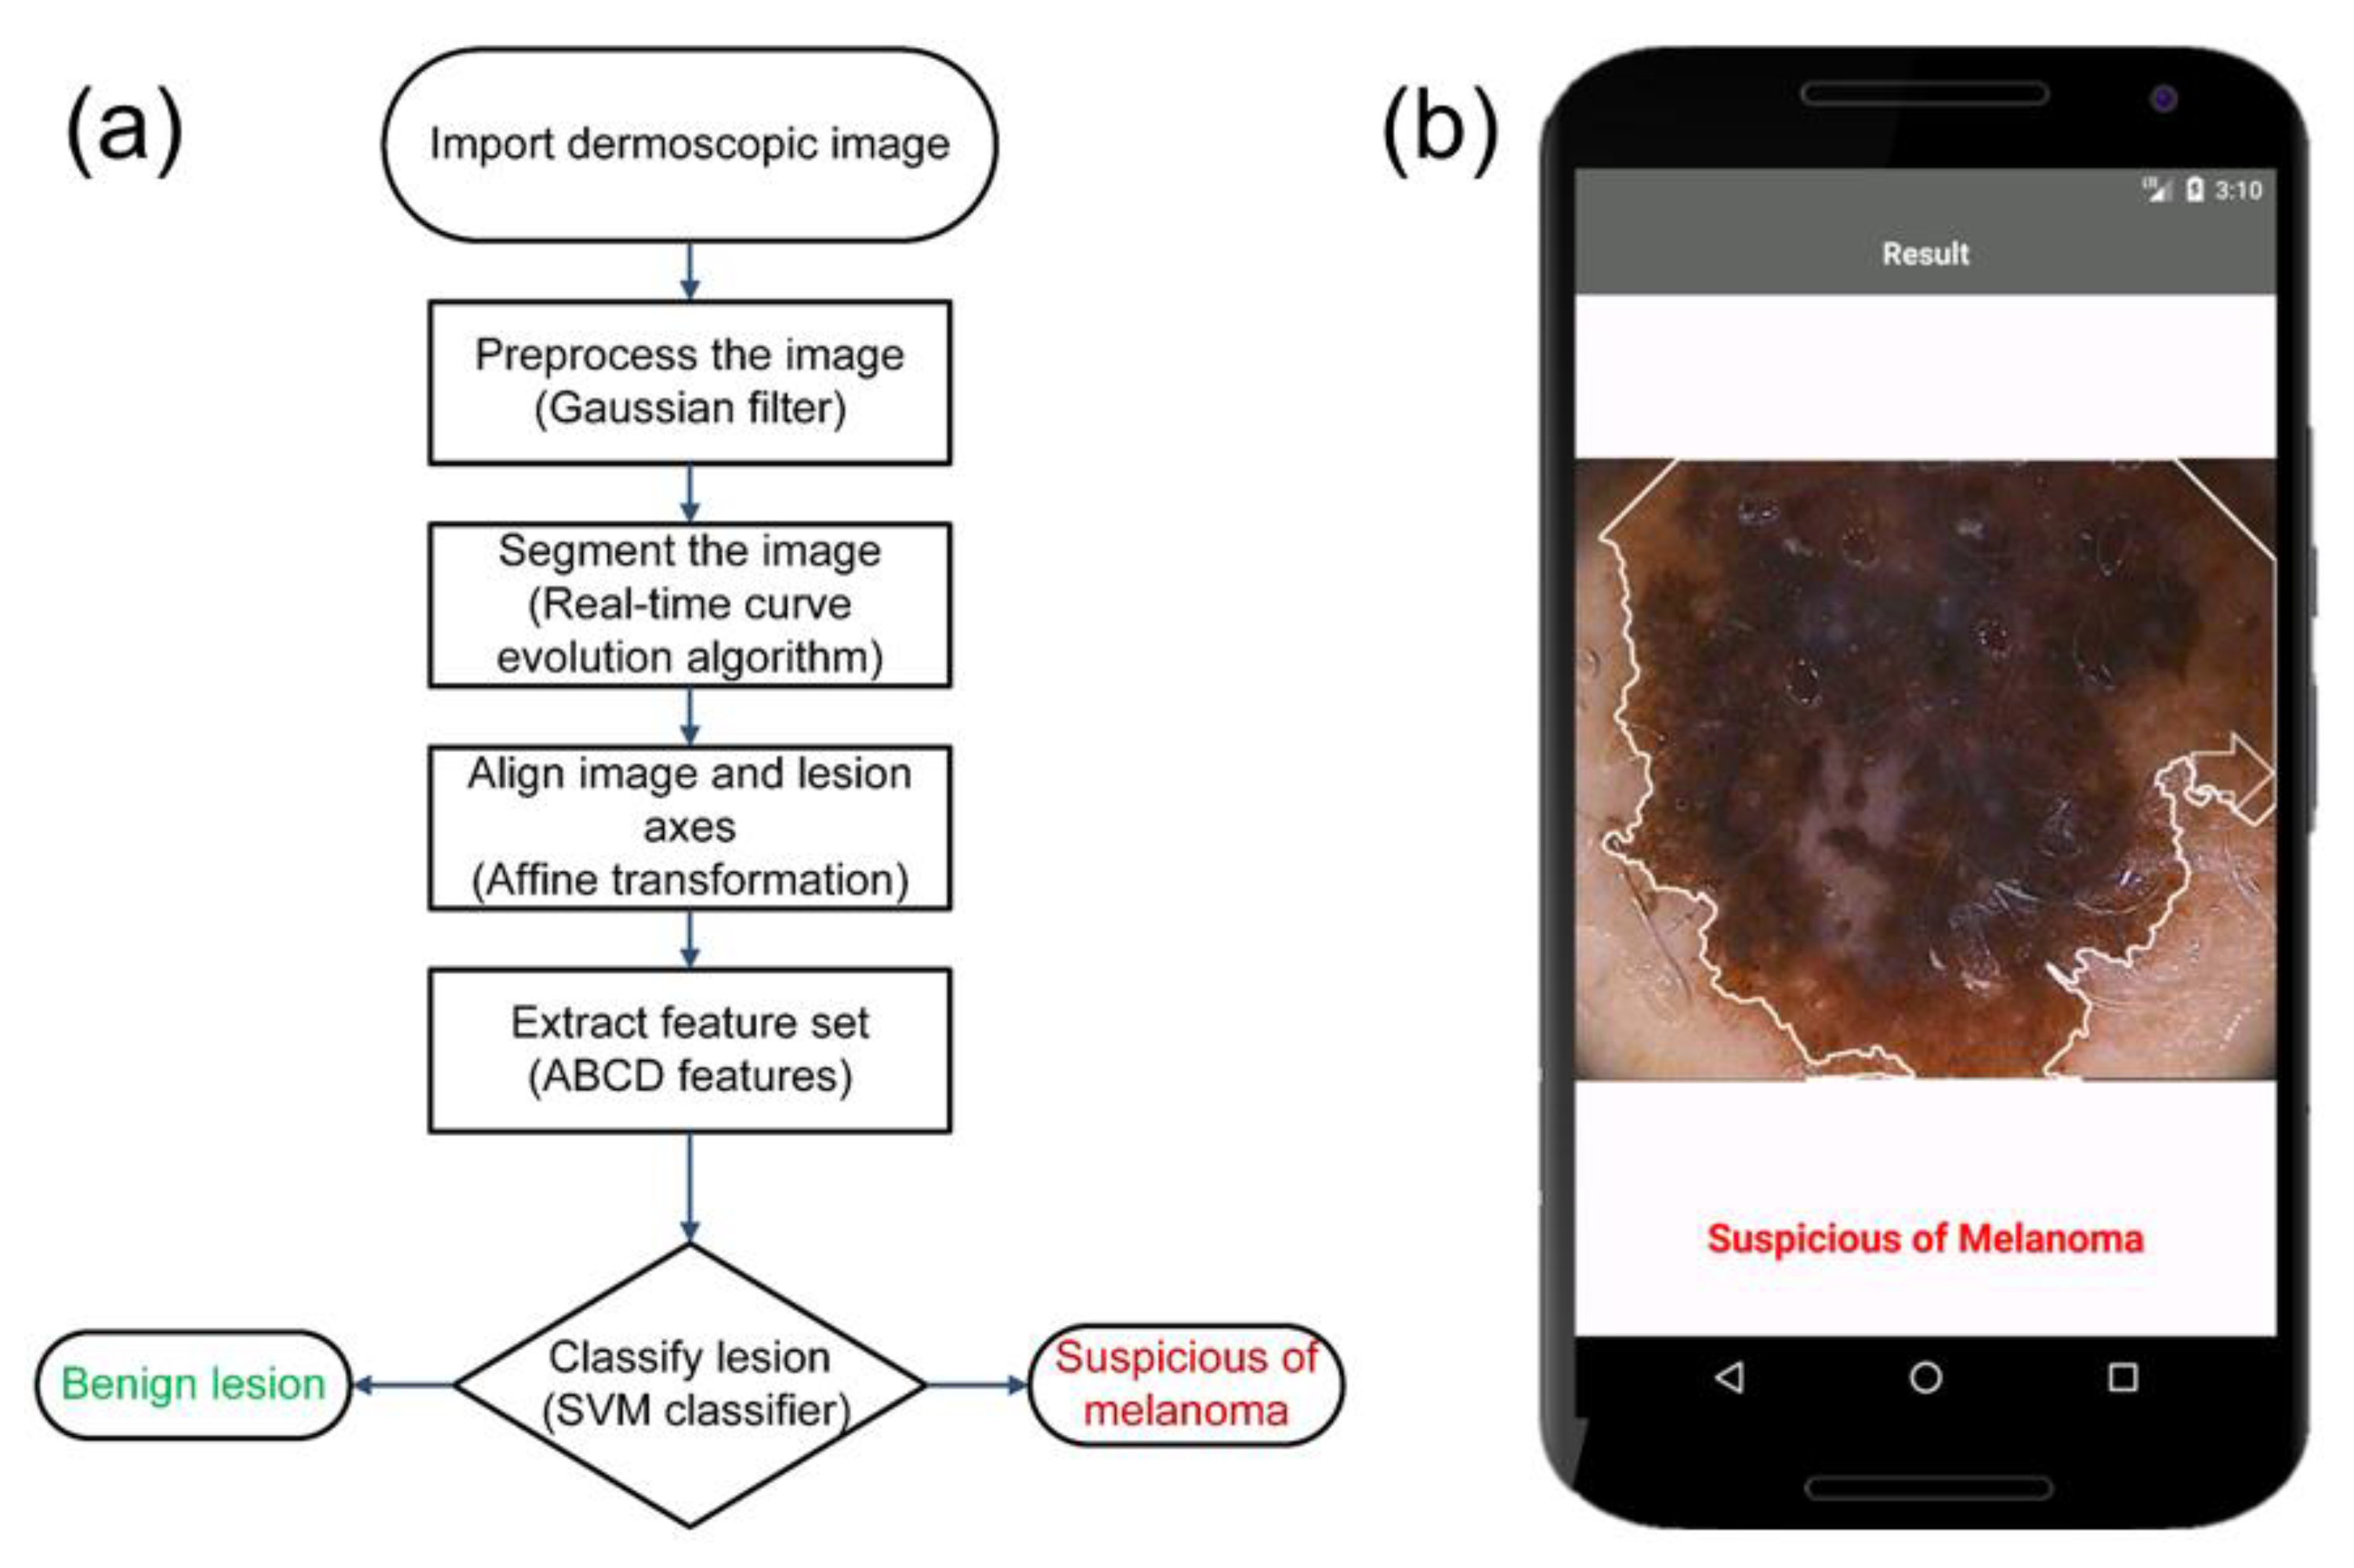 Symmetry Free Full Text Skin Cancer Diagnostics With An All Inclusive Smartphone Application Html